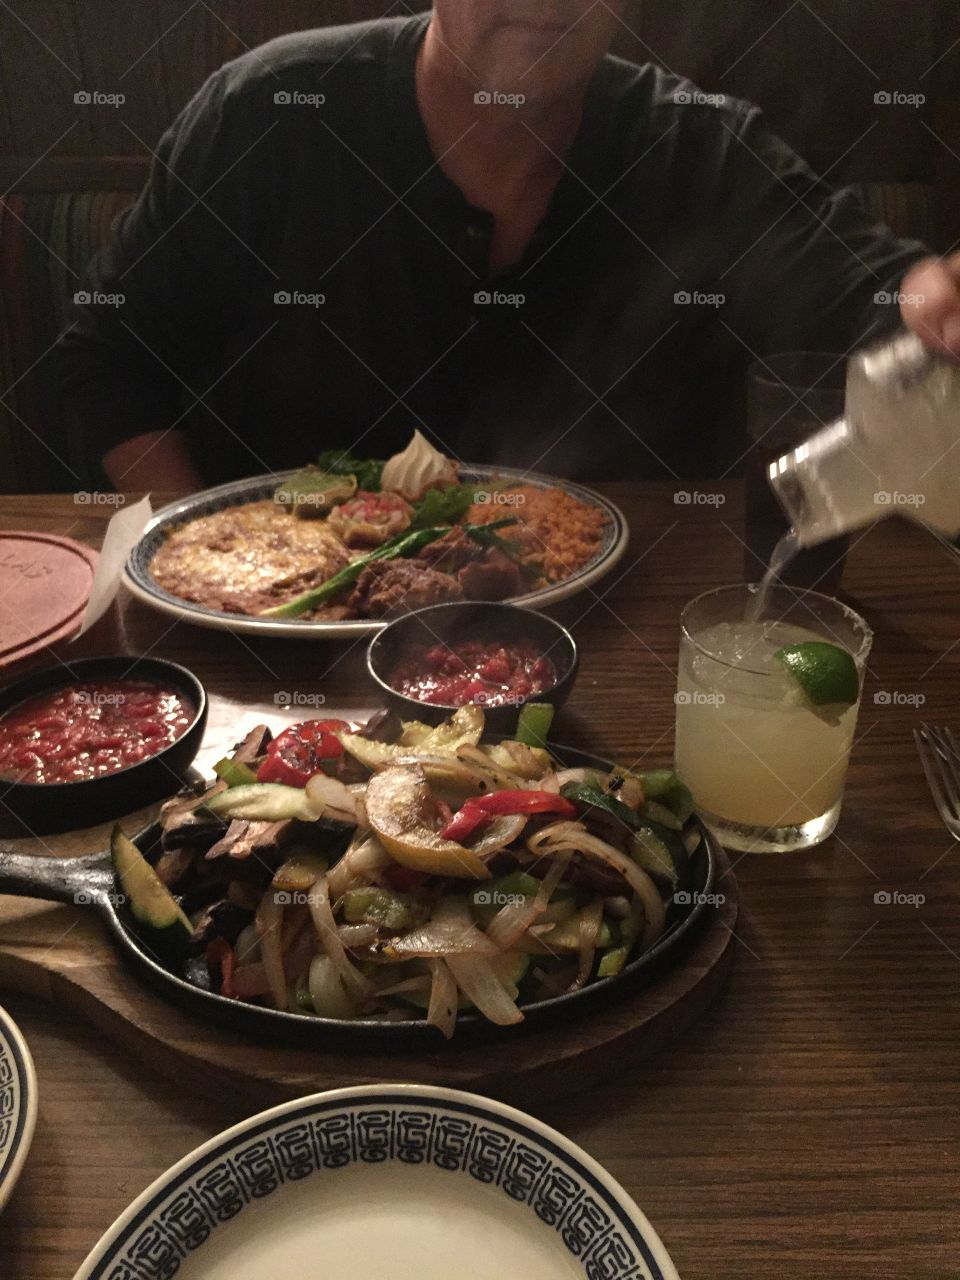 Restaurant table for two for warm romantic dinner featuring Mexican fajitas, chips, salsa, rice, refried beans, cheese, lime, salt, margarita, cilantro